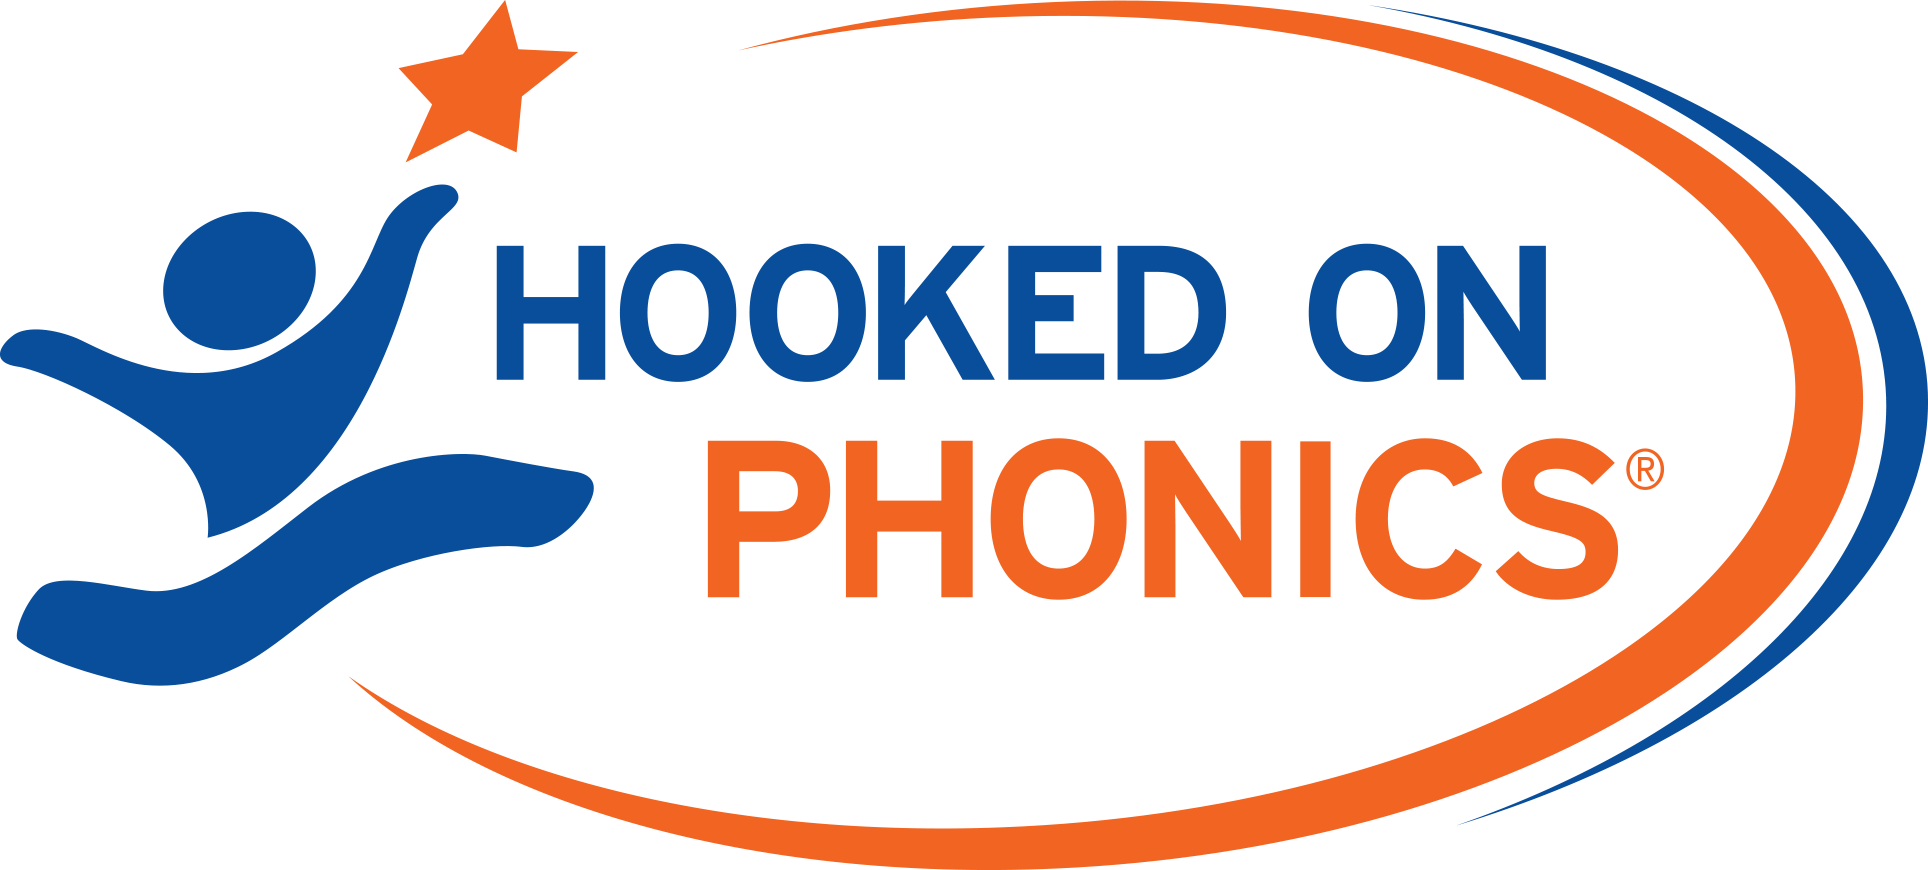 Hooked on Phonics Help Center home page